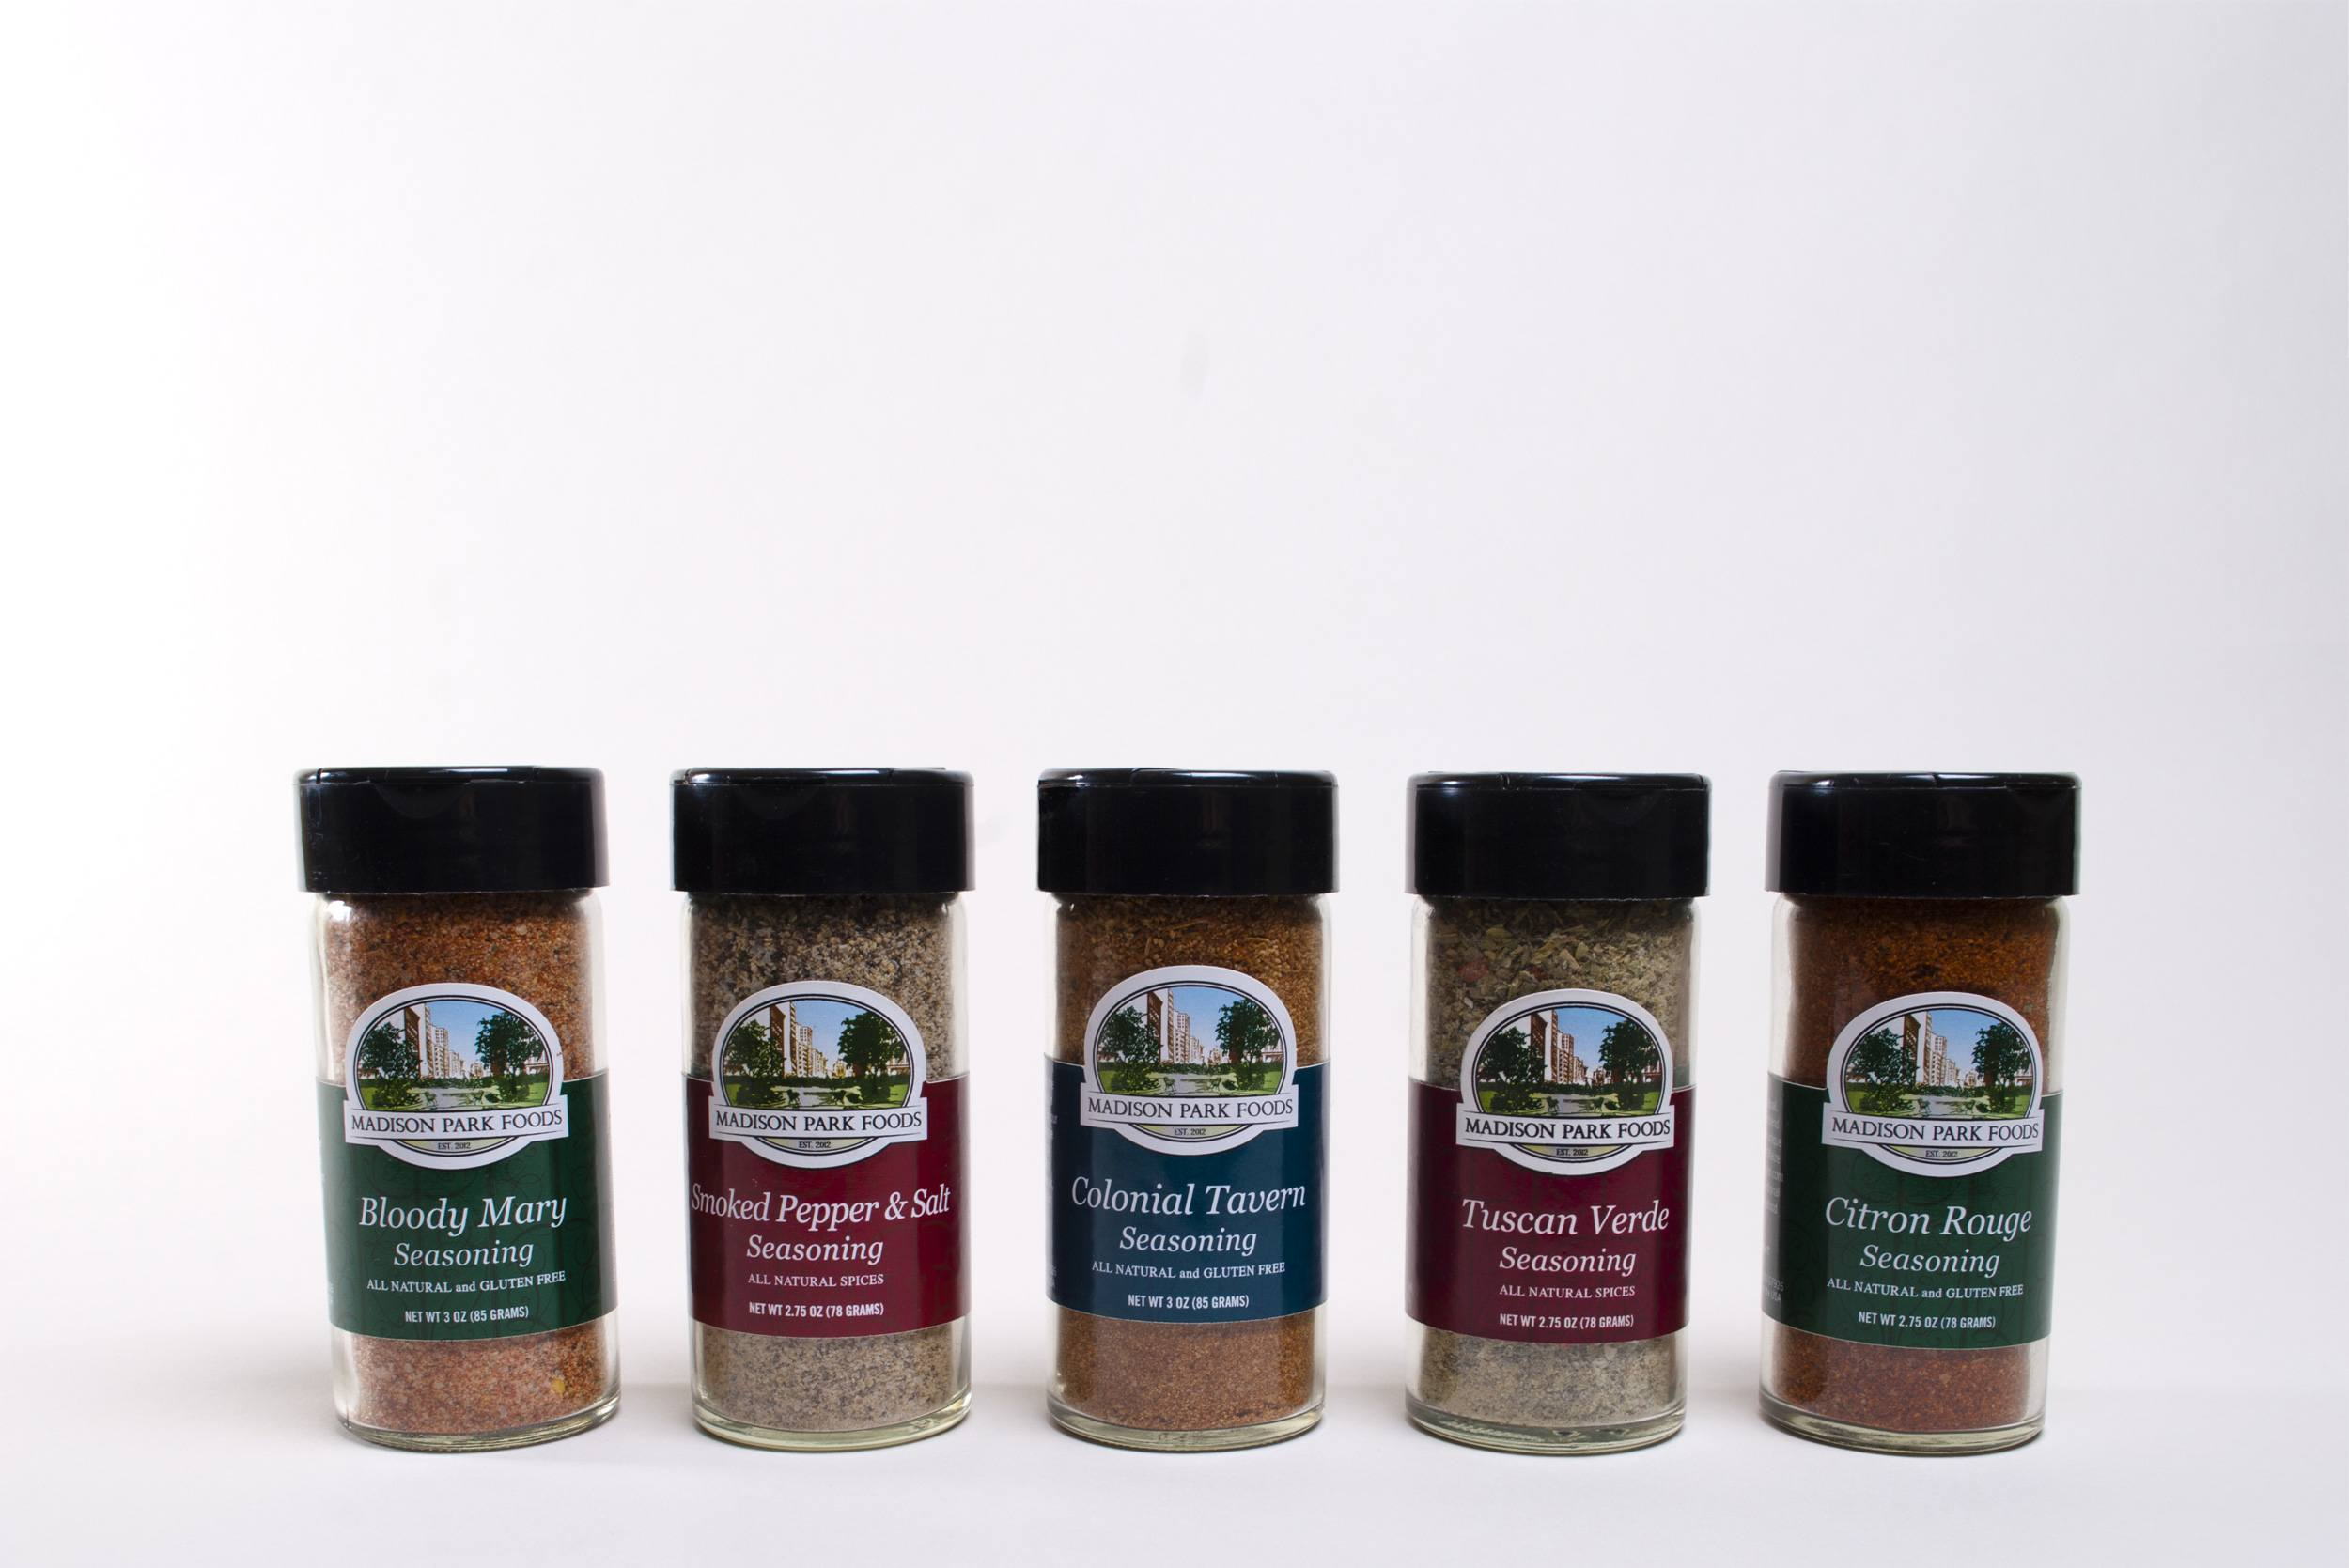 madison-park-foods-seasoning-in-row